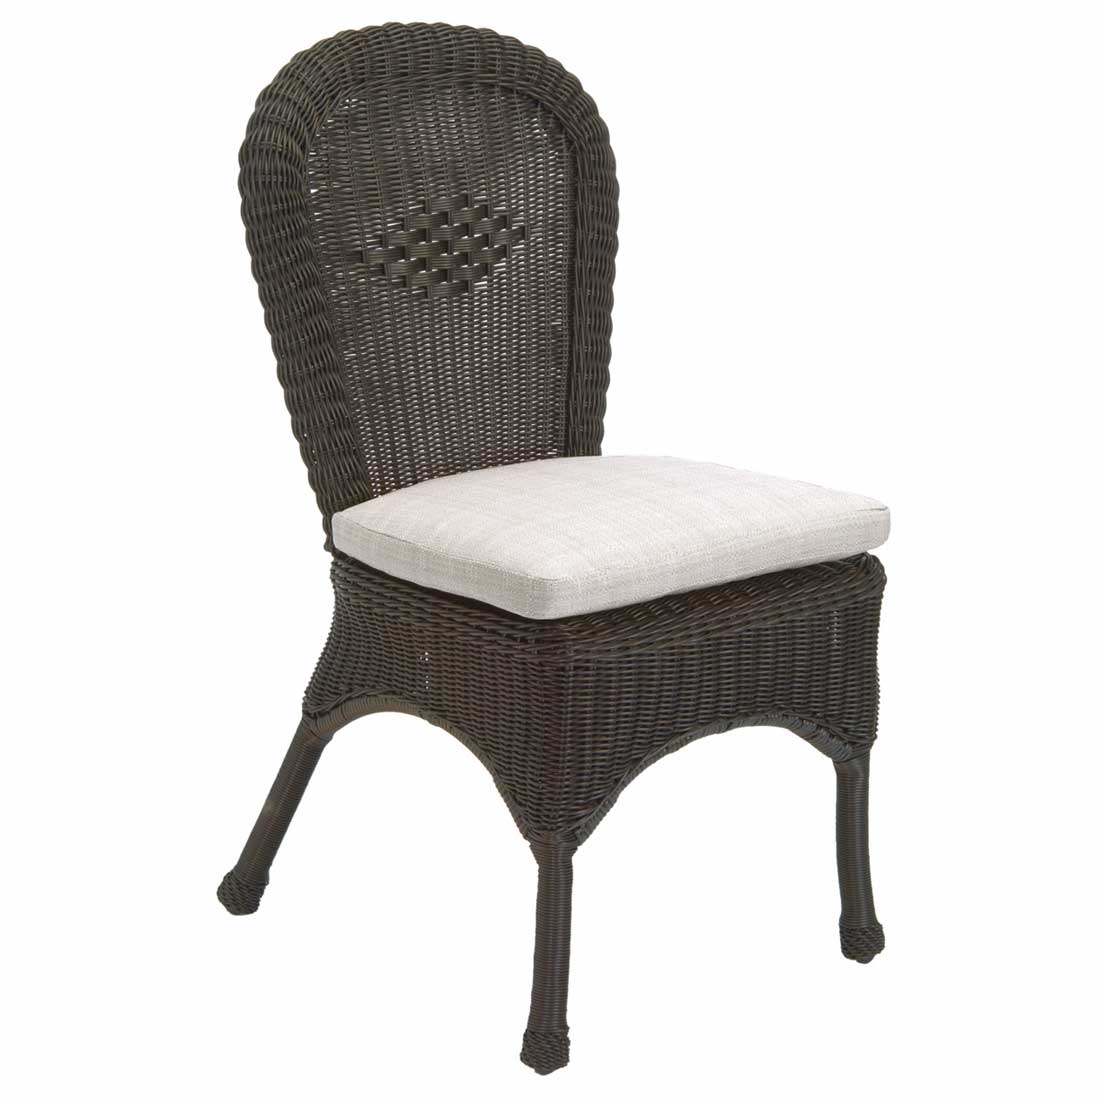 Classic Outdoor Wicker Side Chair